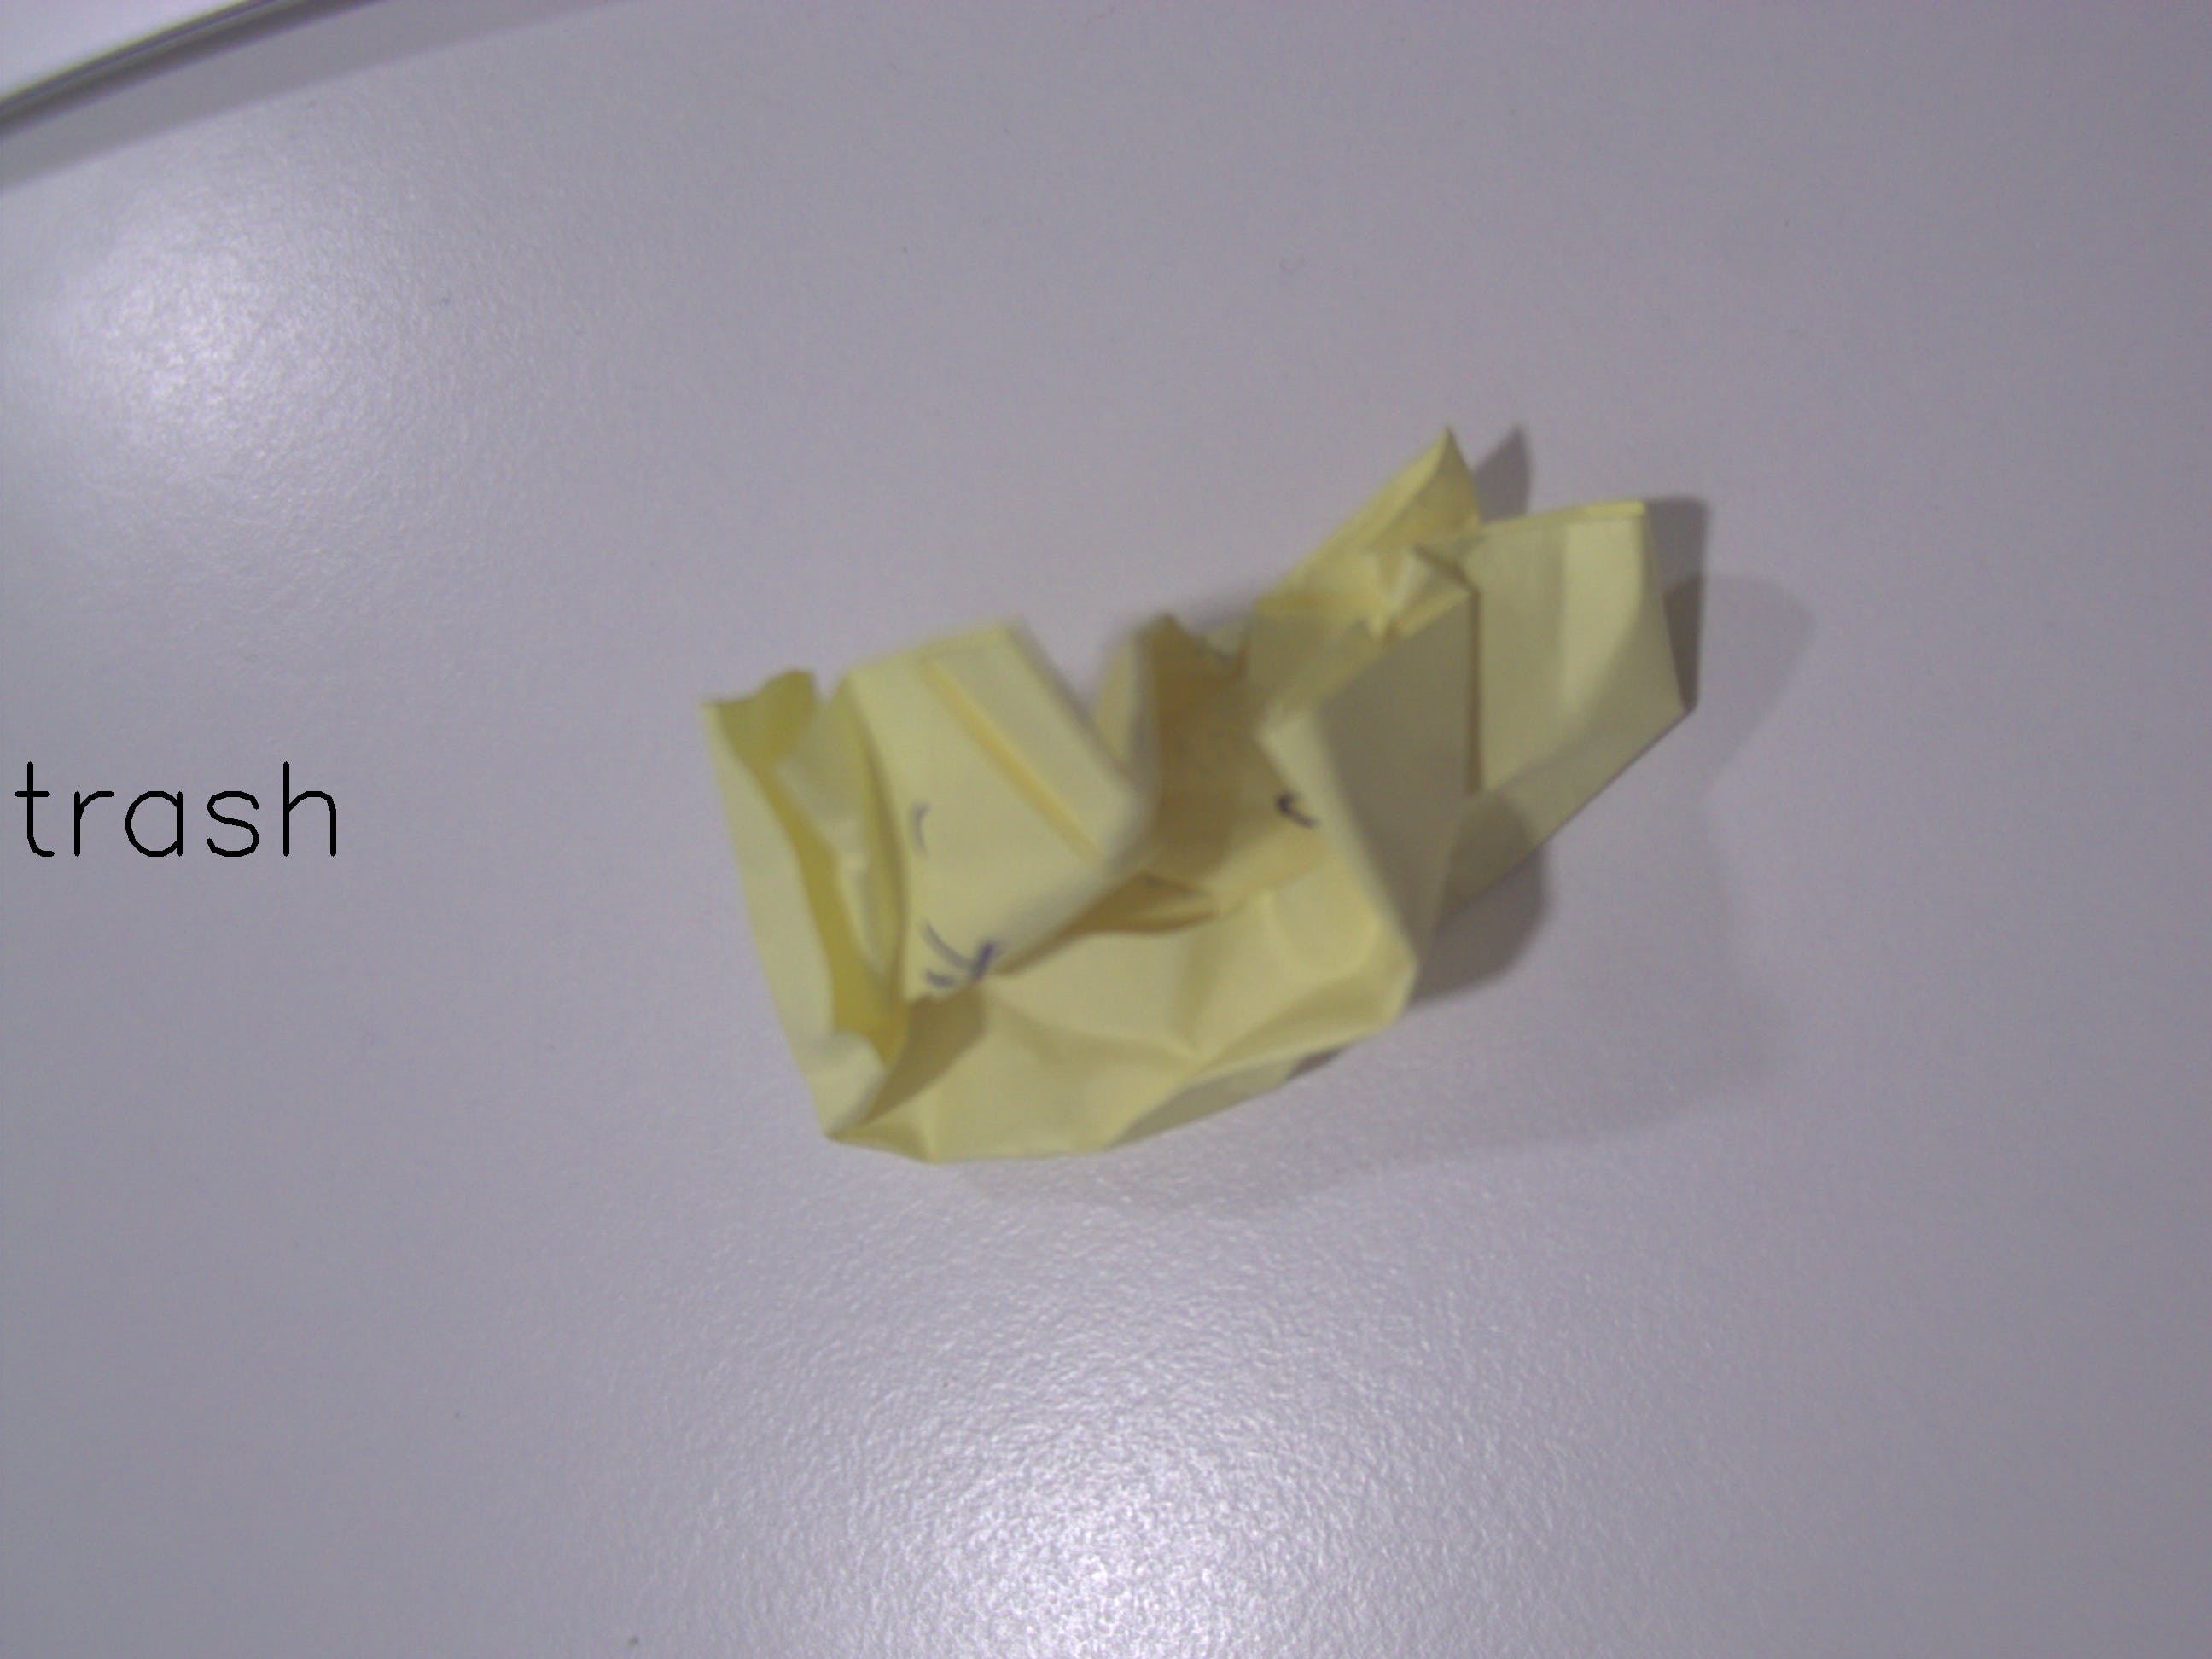 This piece of post it was predicted as trash